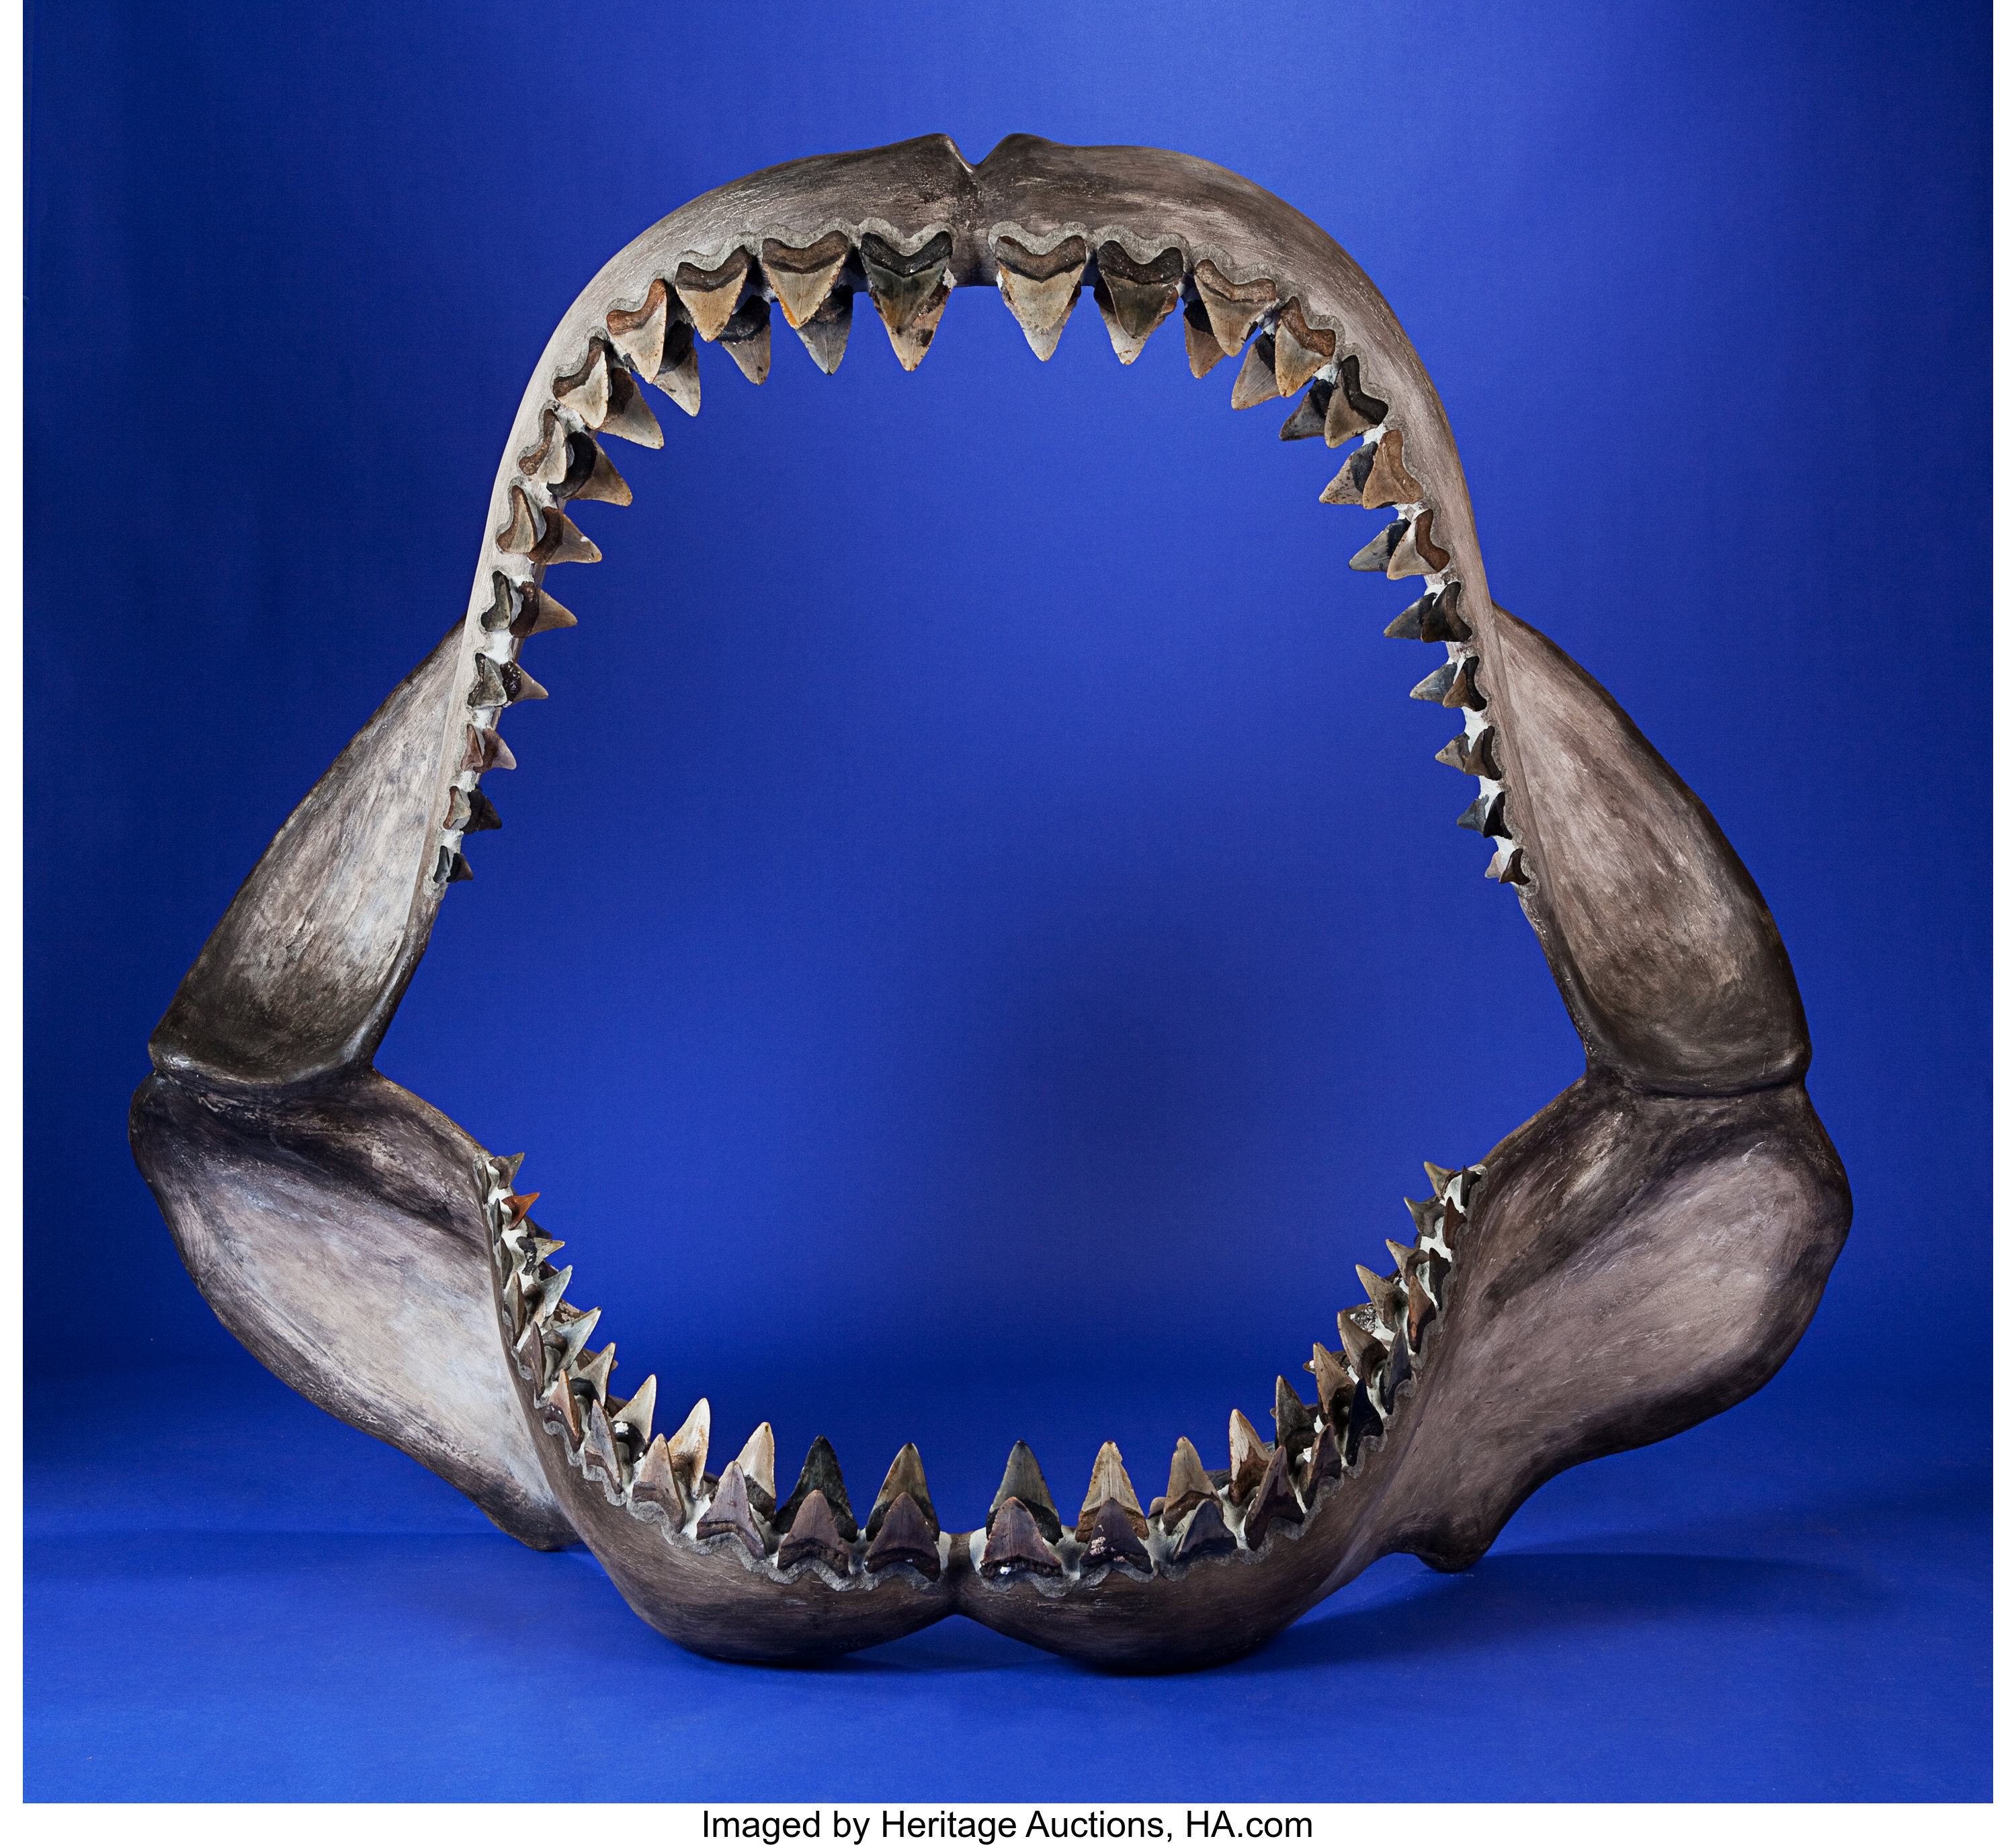 Large Mega Shark Jaw With Fossil Teeth Fossils Fish Lot 49302 Heritage Auctions